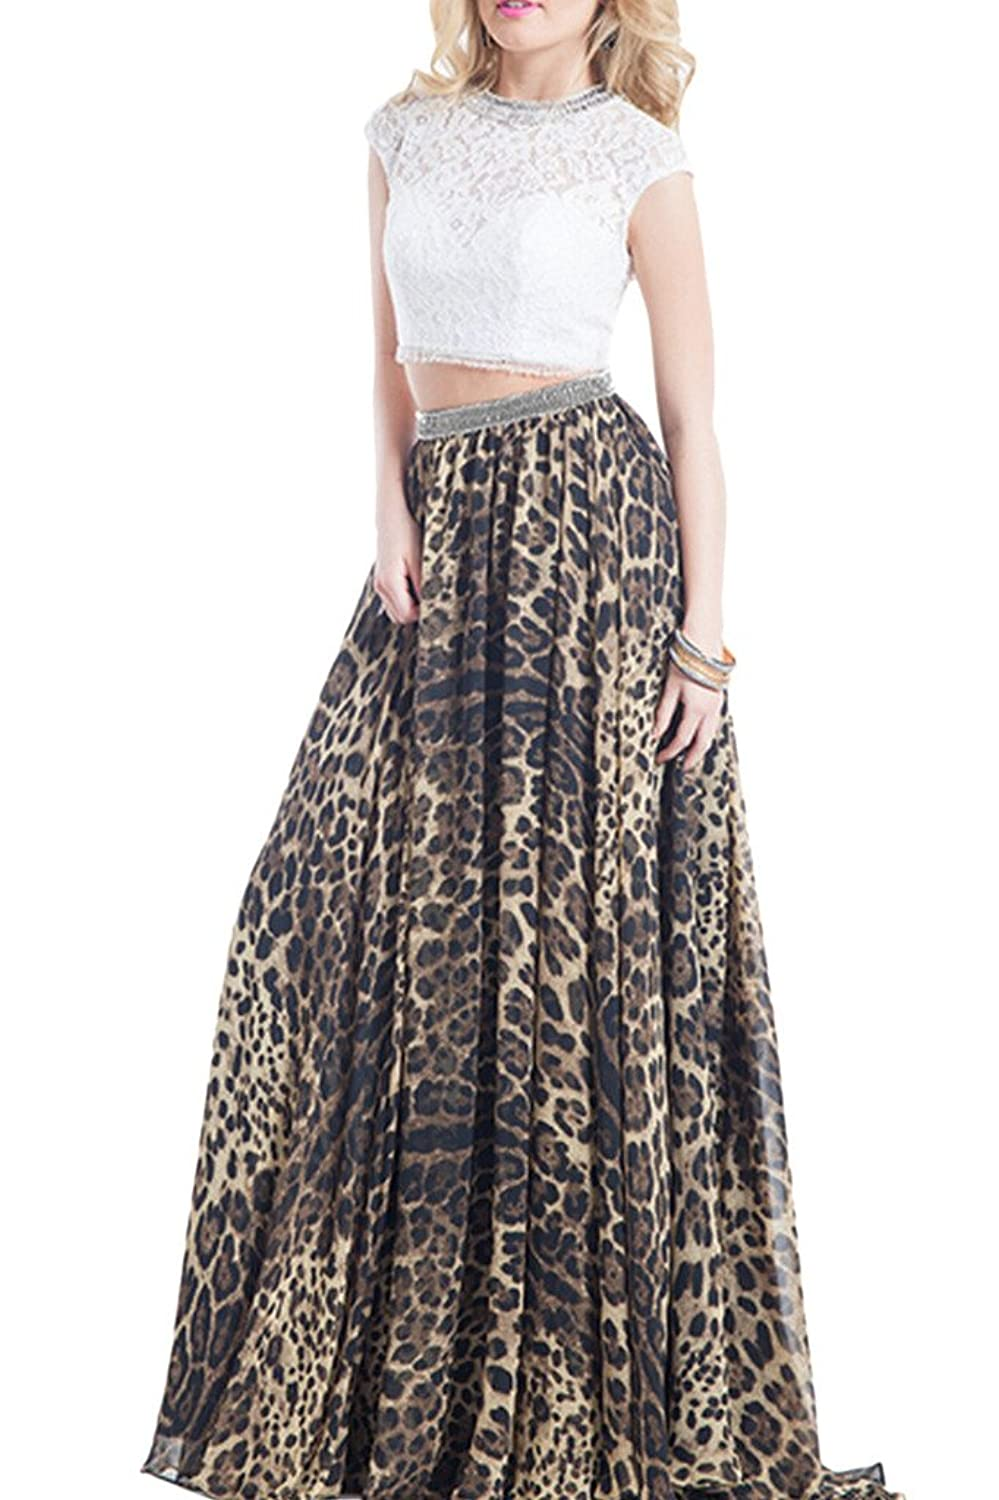 OKDRESS Two Piece Leopard Print Lace Chiffon Maxi Evening Party Dress Prom Gown